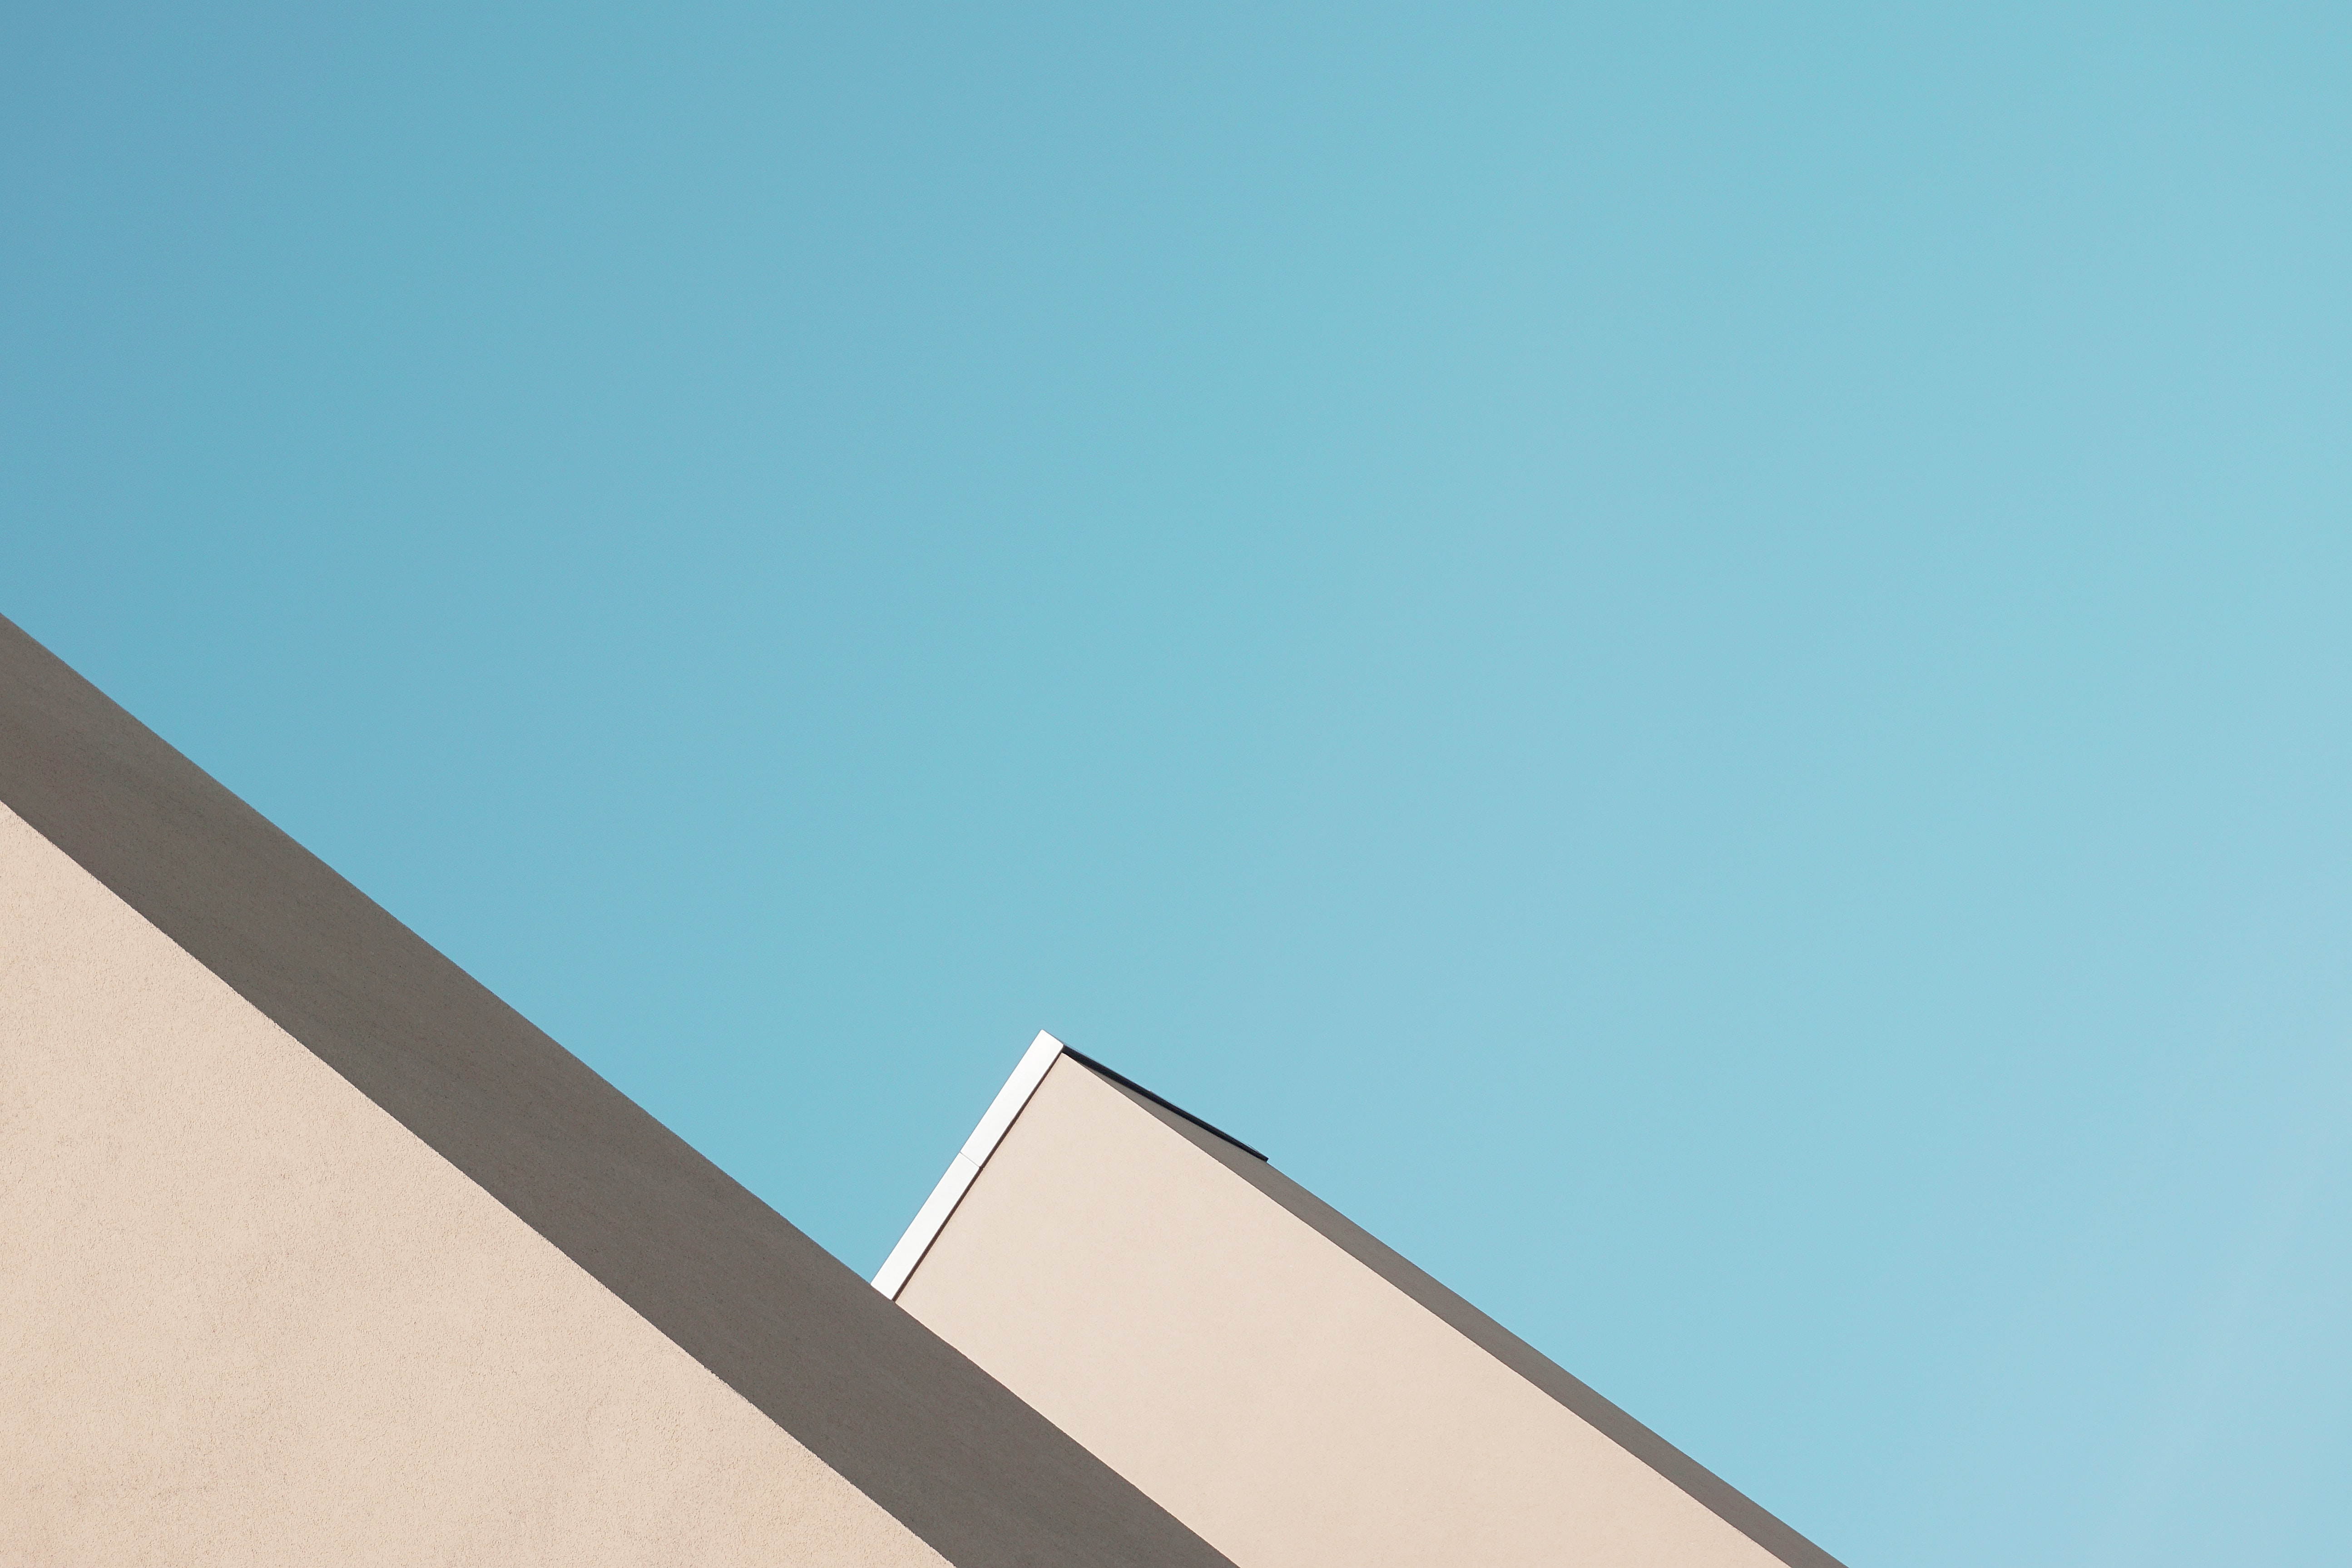 beige painted building under blue sky